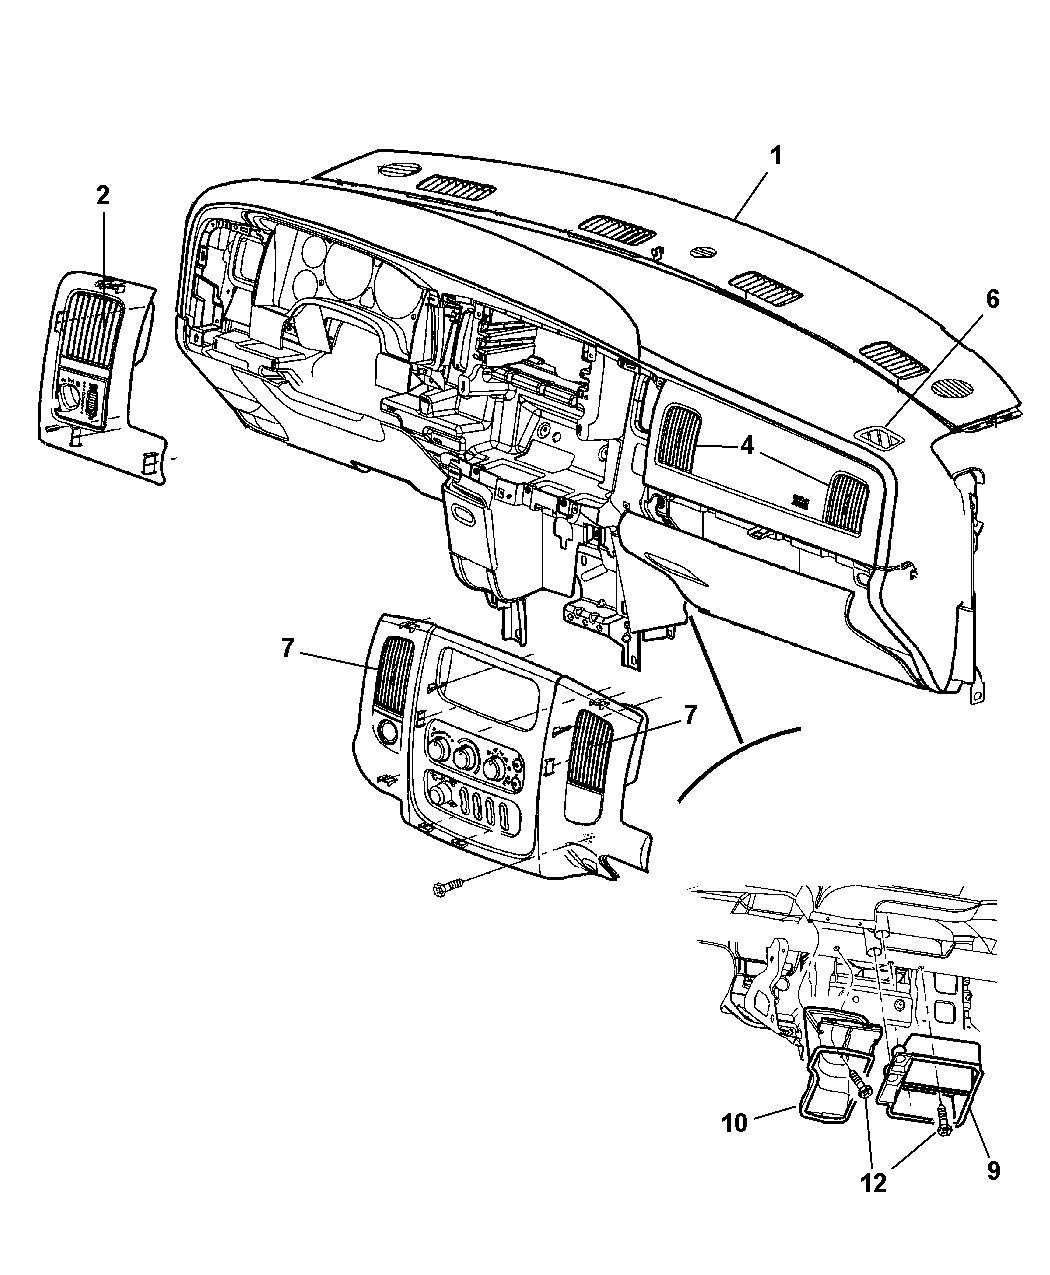 Pontiac Vibe Suspension Parts Diagram. Pontiac. Auto